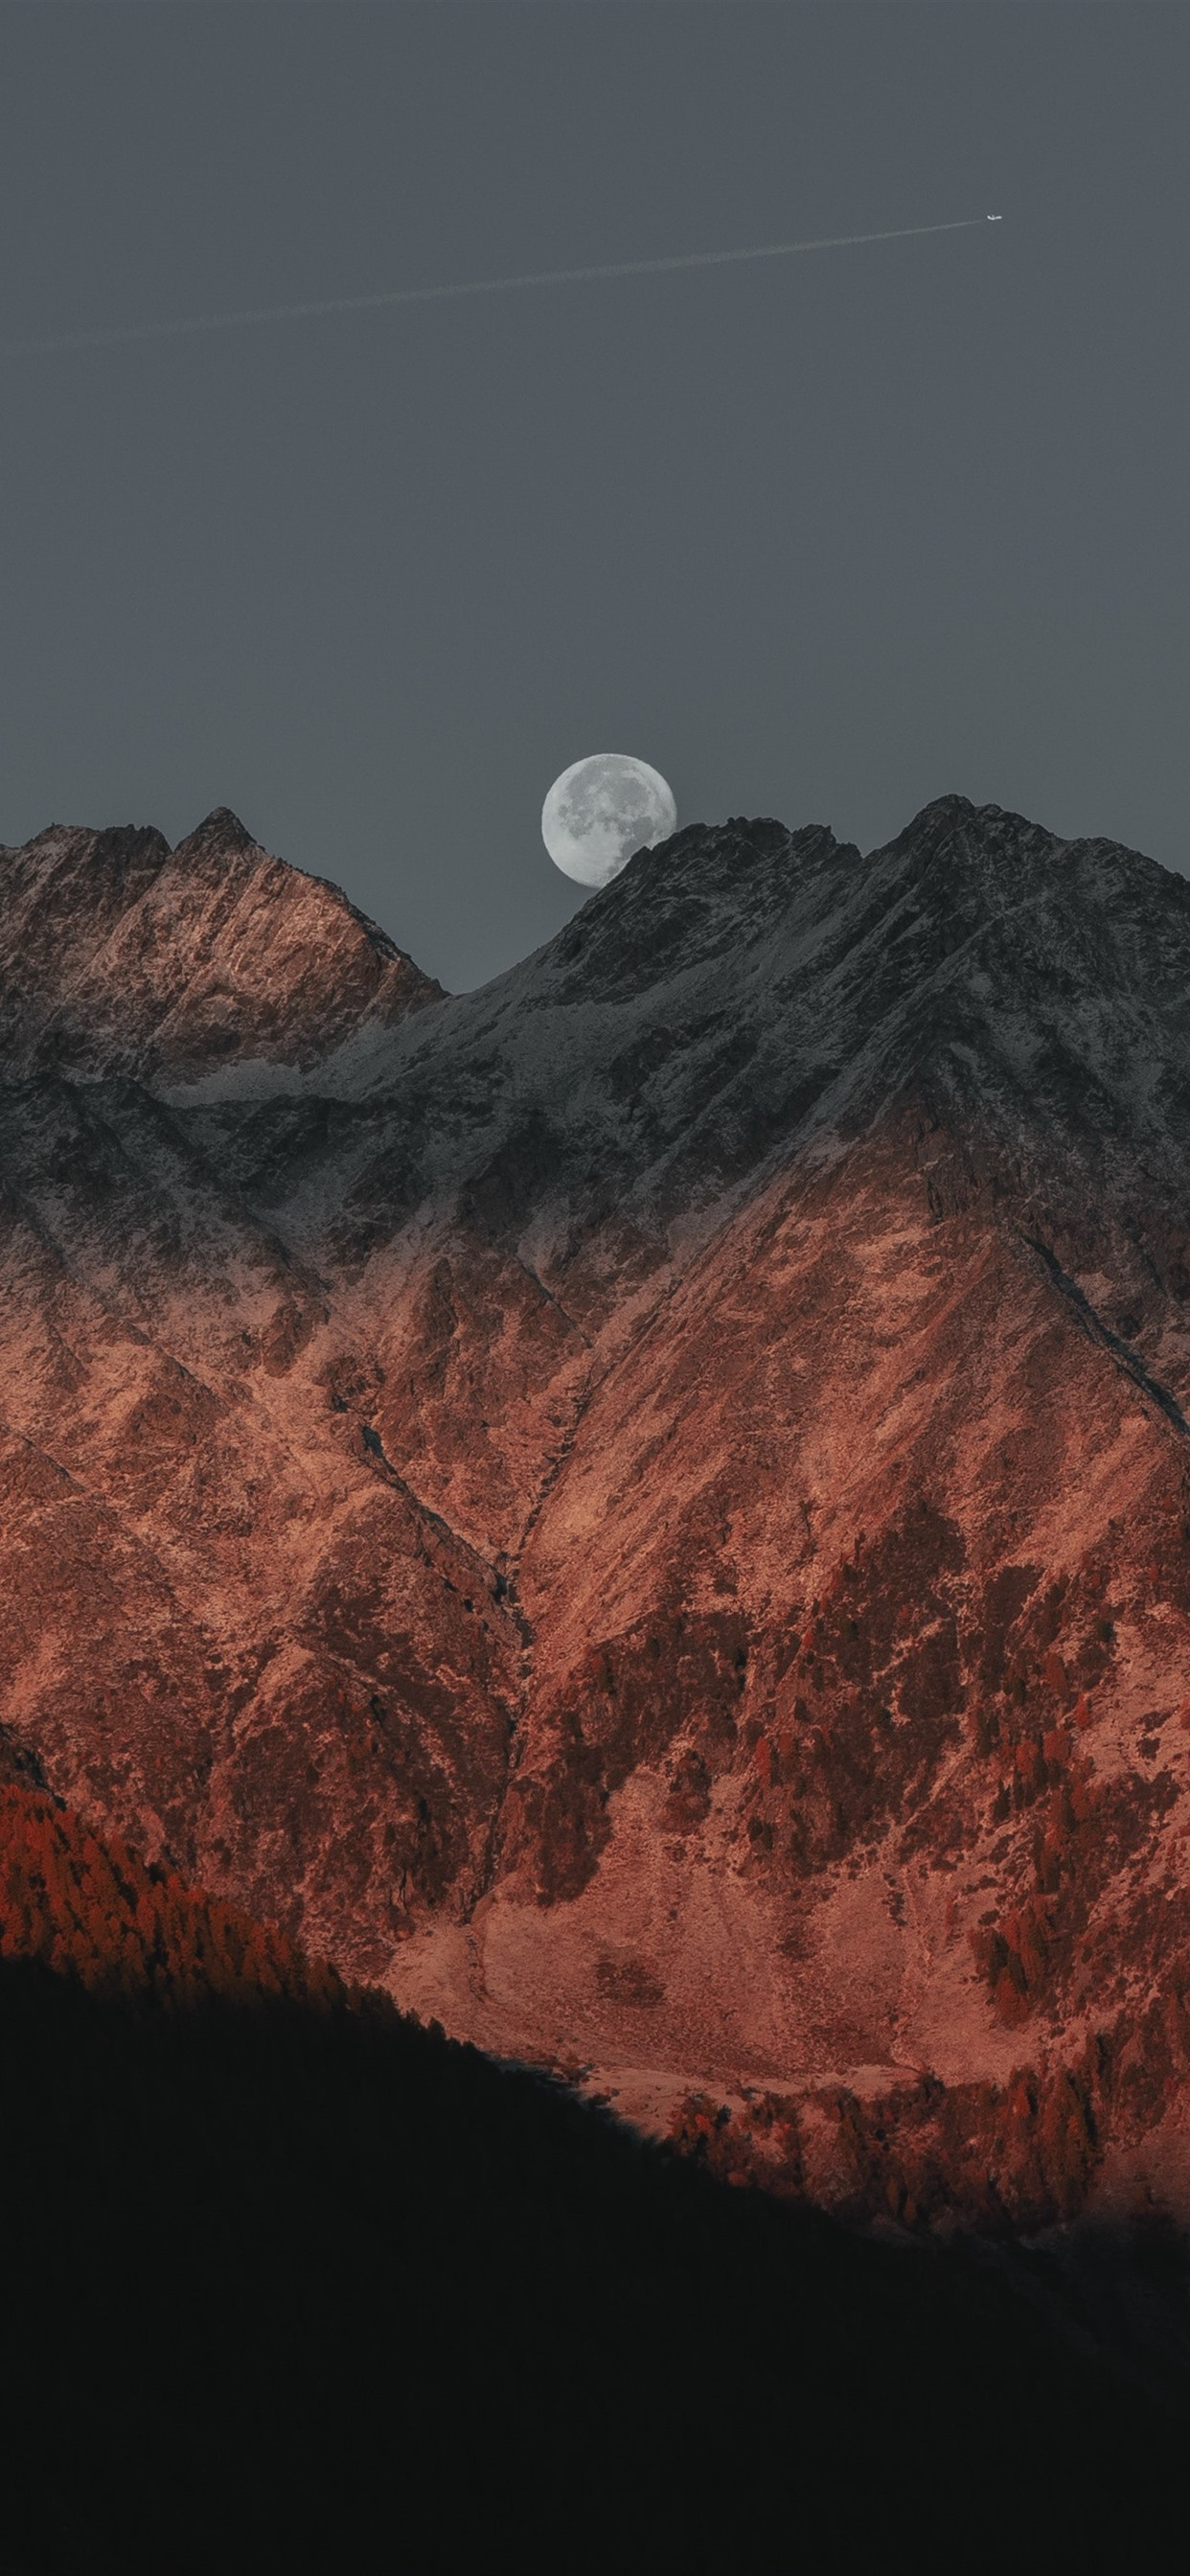 Mountain Shadow Moon Dusk 1242x2688 Iphone 11 Pro Xs Max Wallpaper Background Picture Image